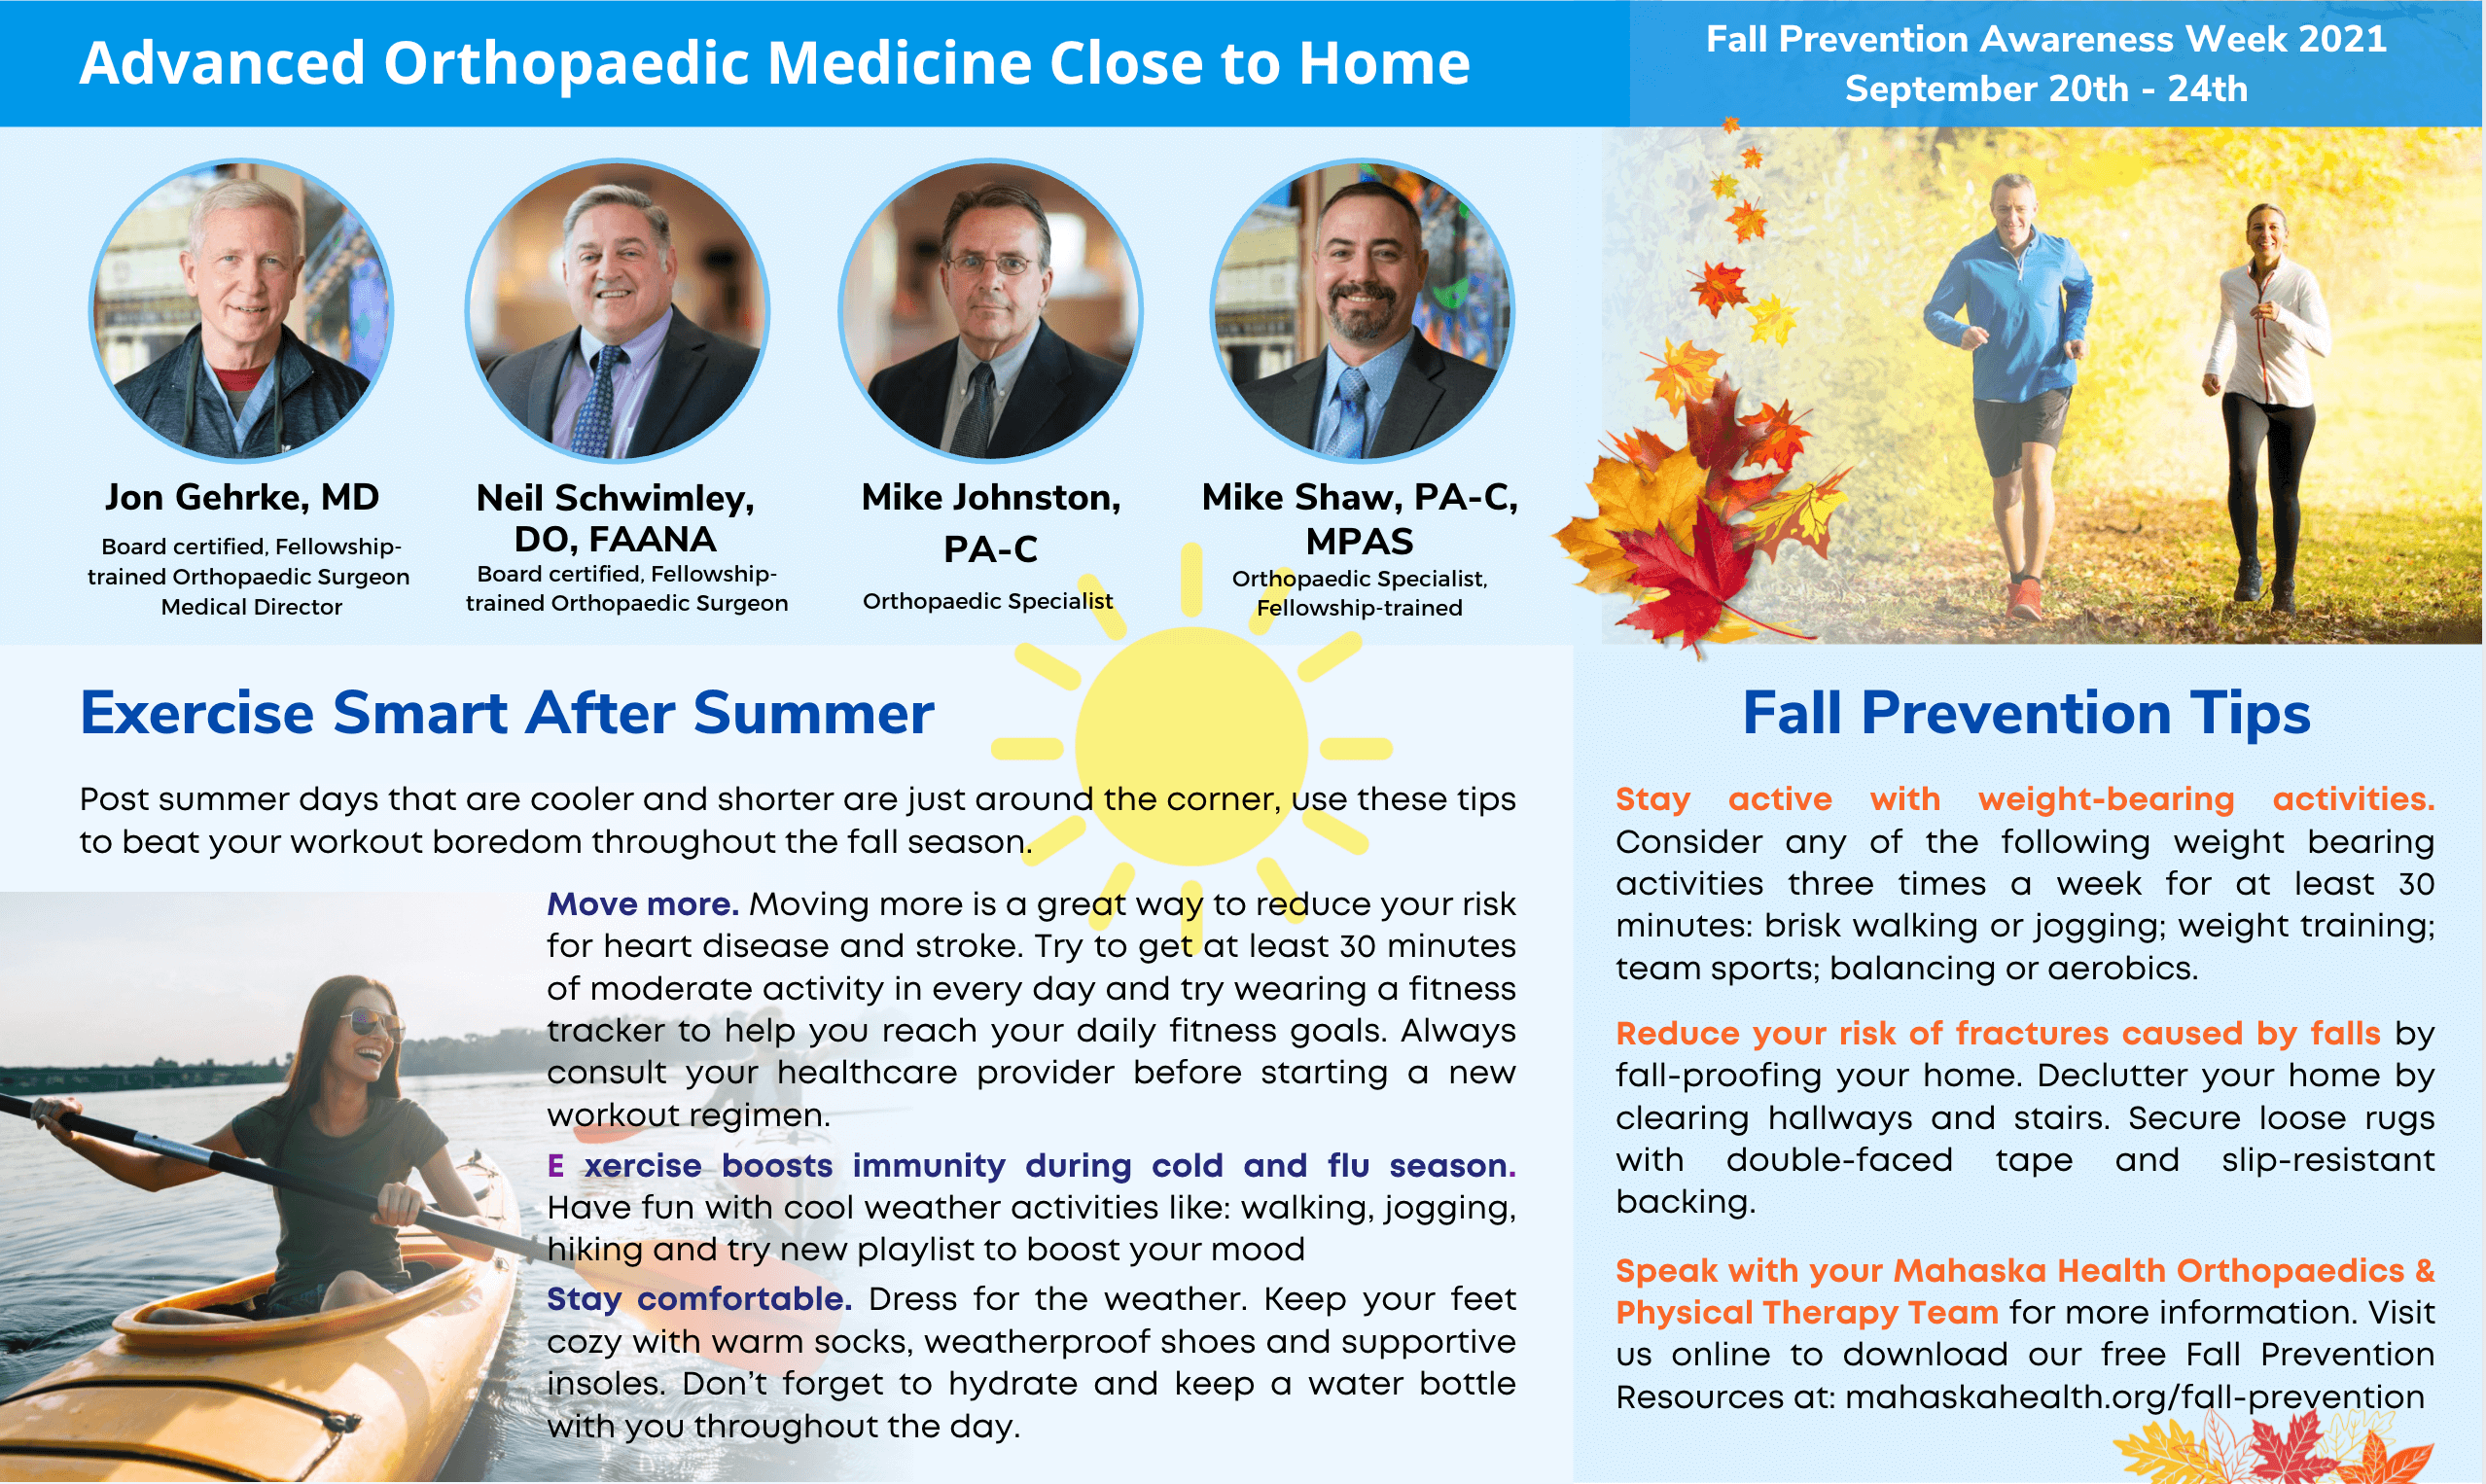 Fall Prevention Tips from your Orthopaedics & Physical Therapy Team 1